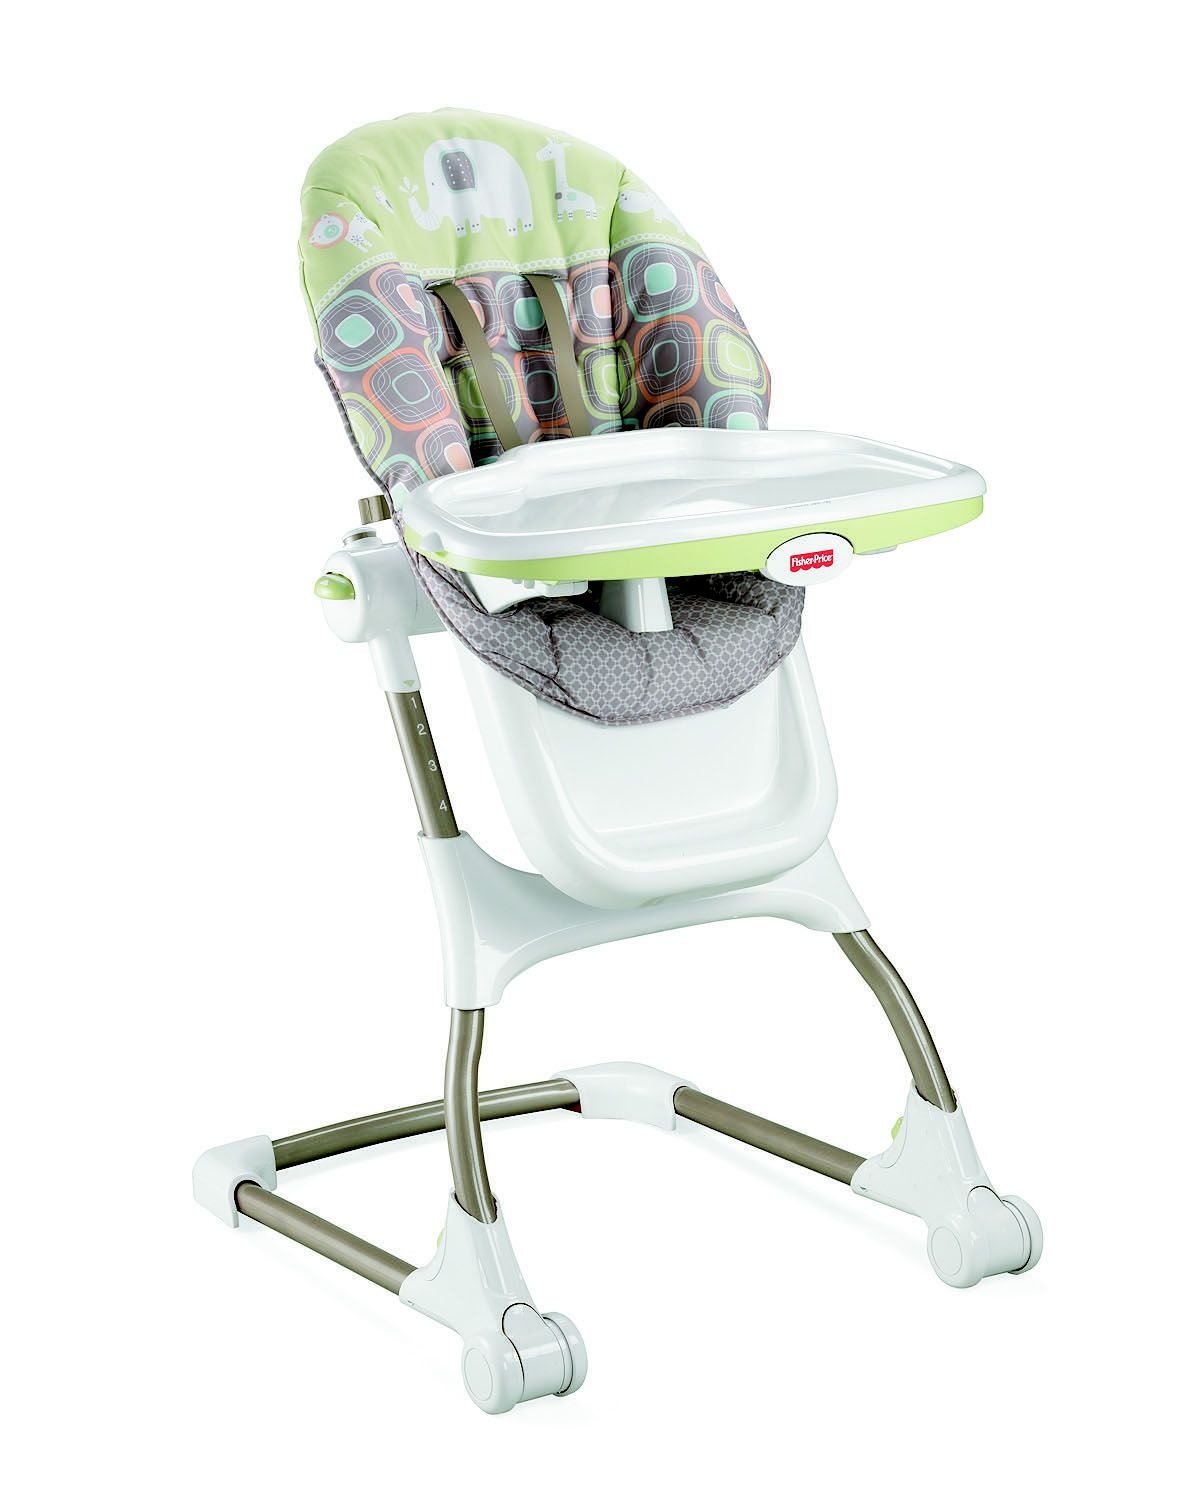 Evenflo Compact Fold High Chair Fisher Price Easy Fold High Chair Fisher Price Easy Clean